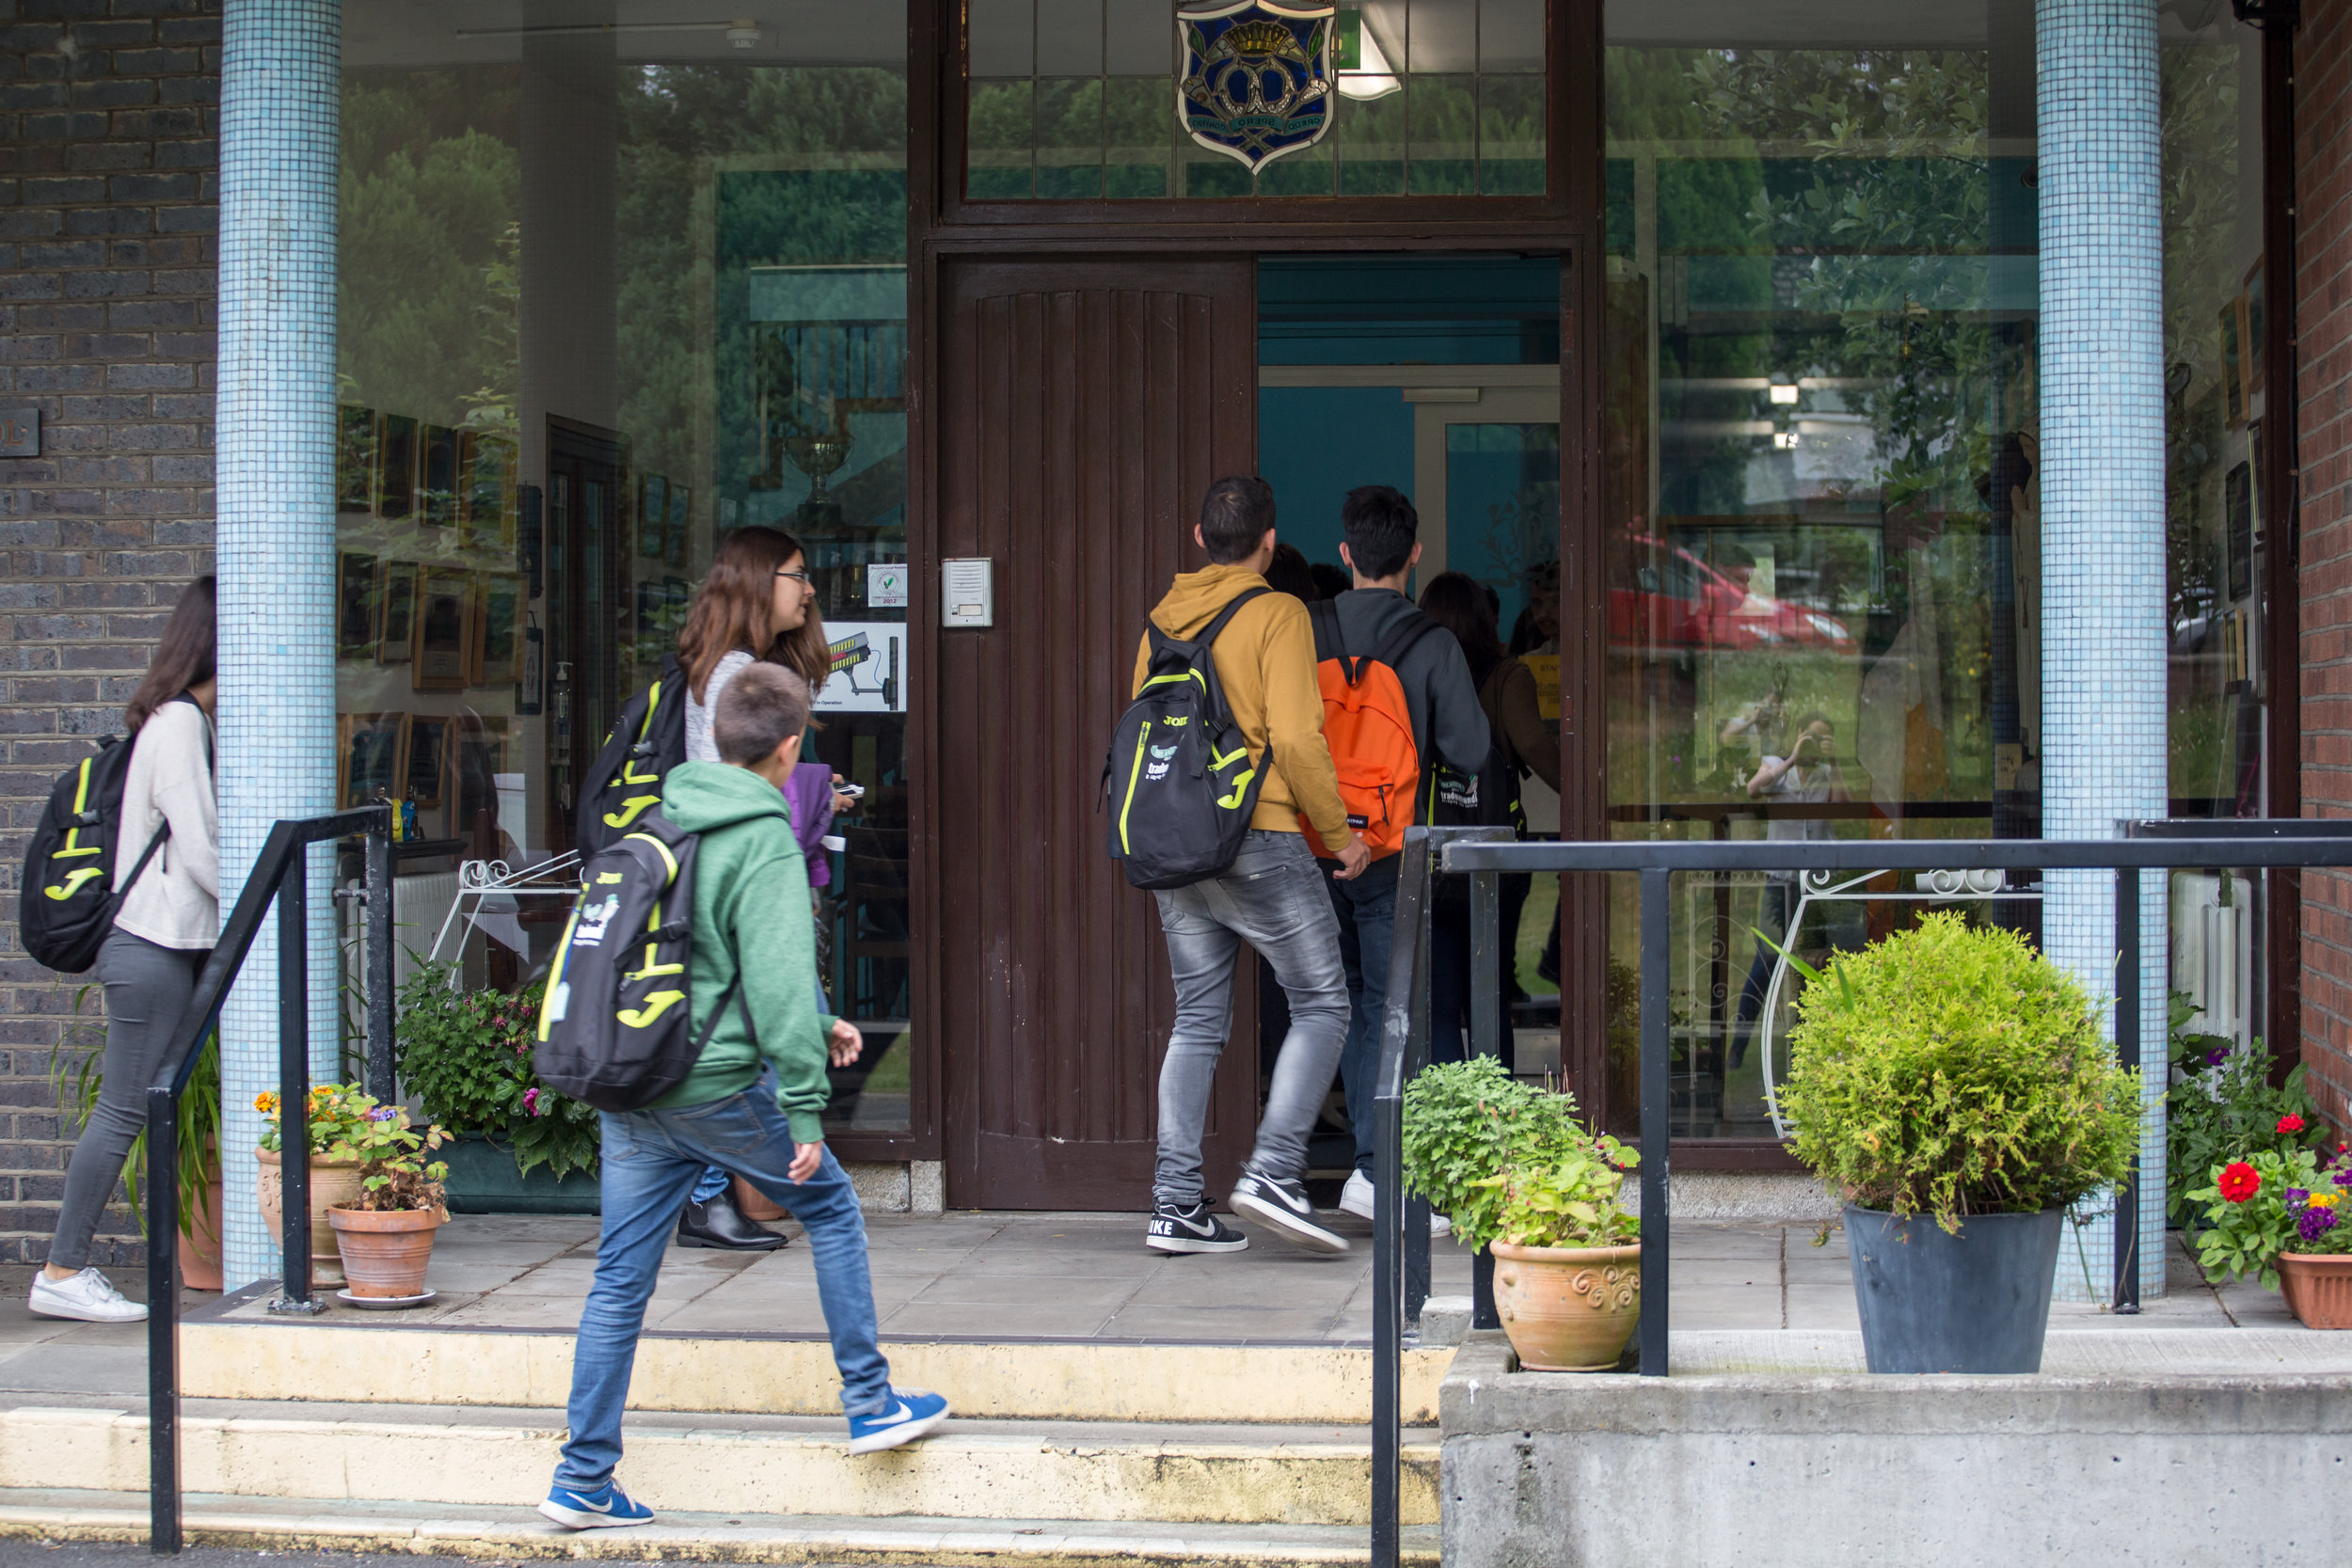 summer-school-entrance.jpg